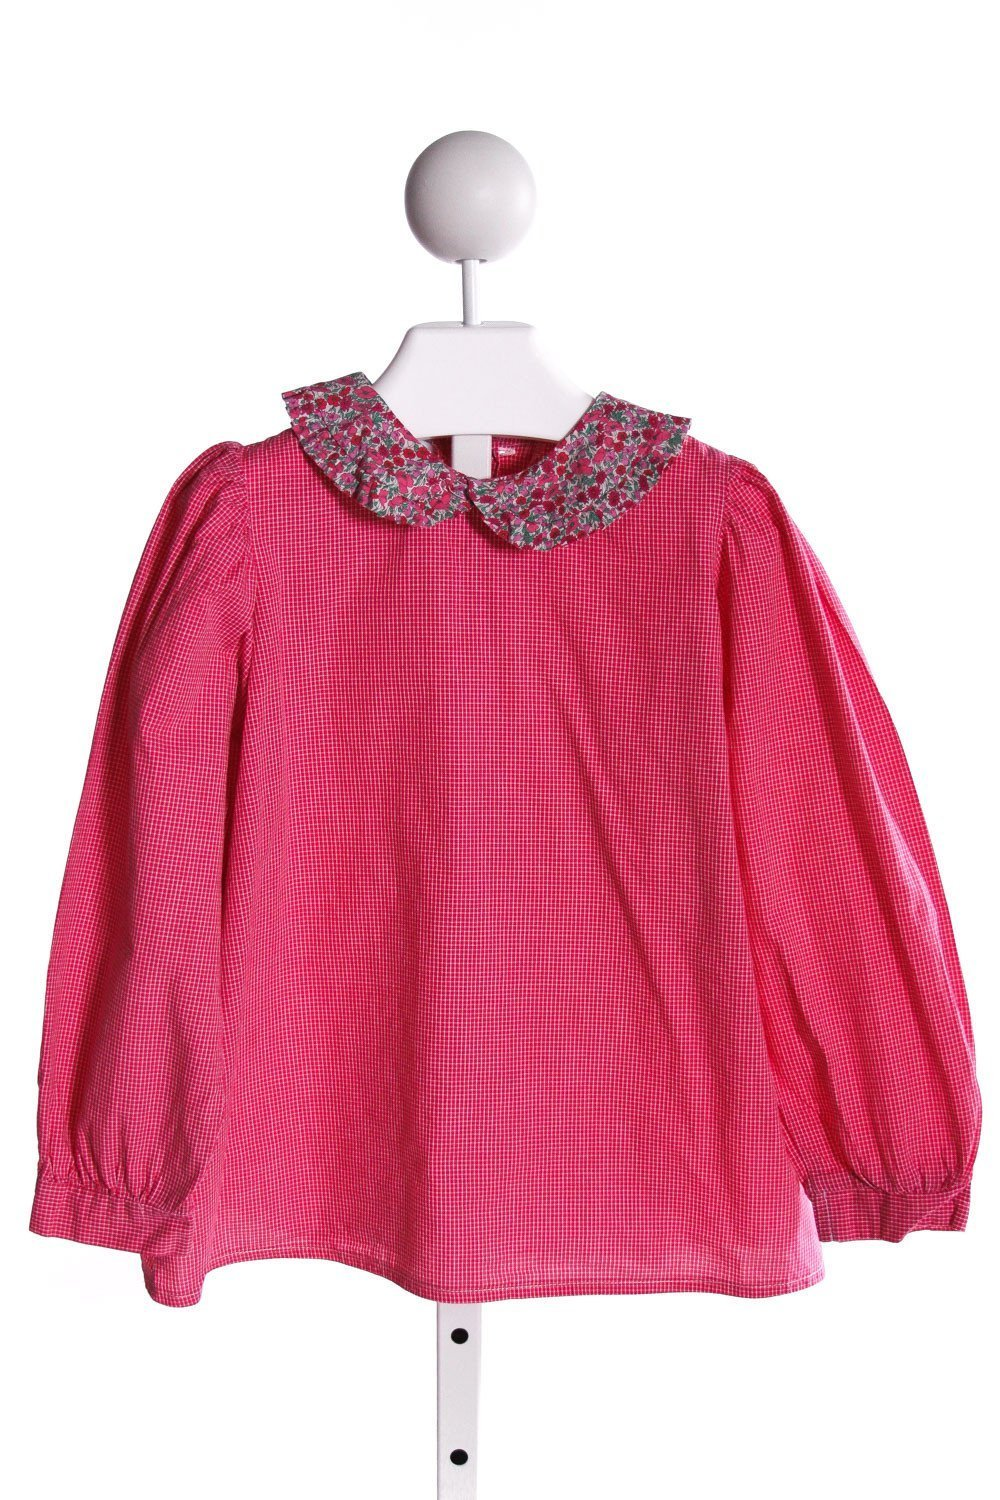 ALICE KATHLEEN  HOT PINK  WINDOWPANE  CLOTH LS SHIRT WITH RUFFLE